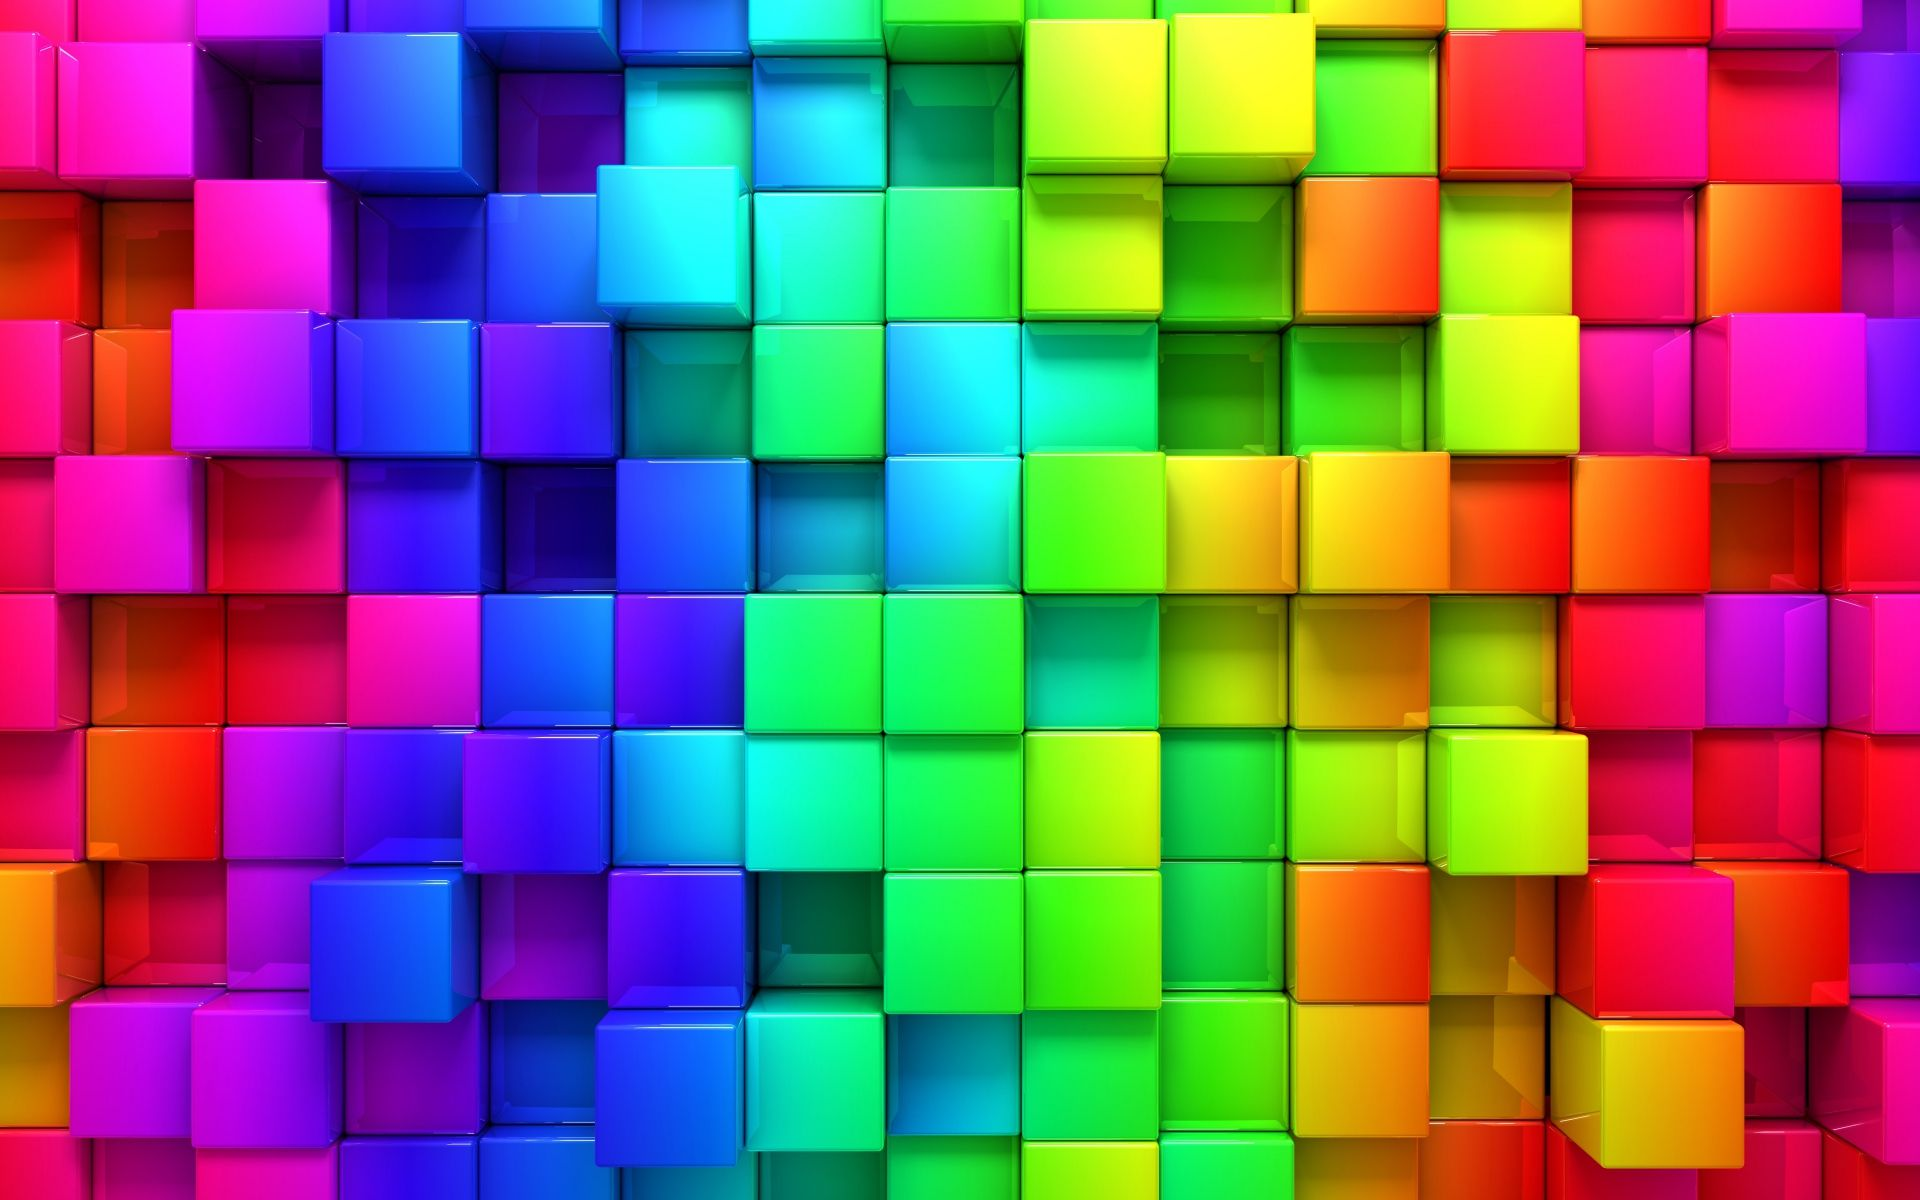 Colorful Wallpaper Background Wallpaper Pinterest Colorful